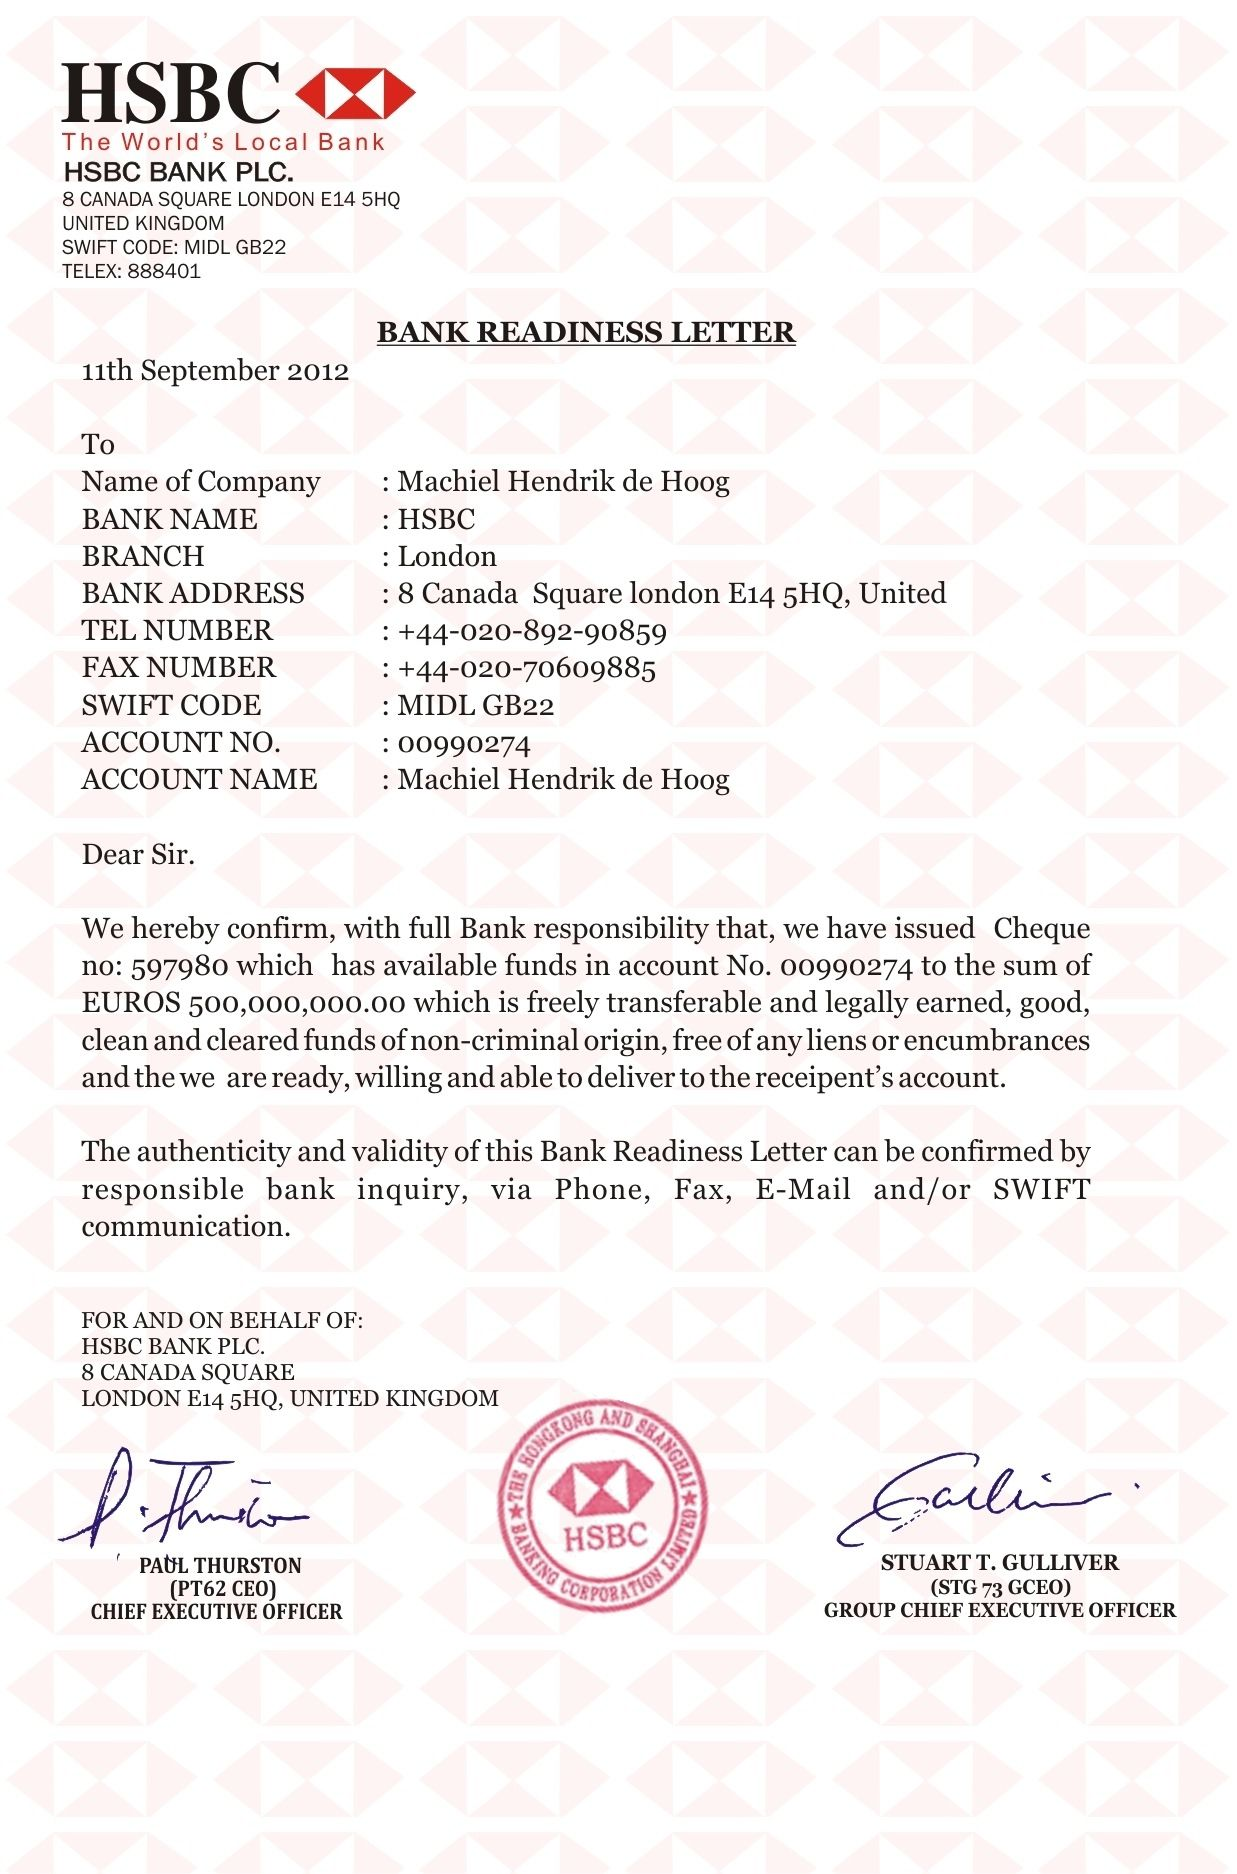 account close business hsbc cover templates letter bank | Hsbc in